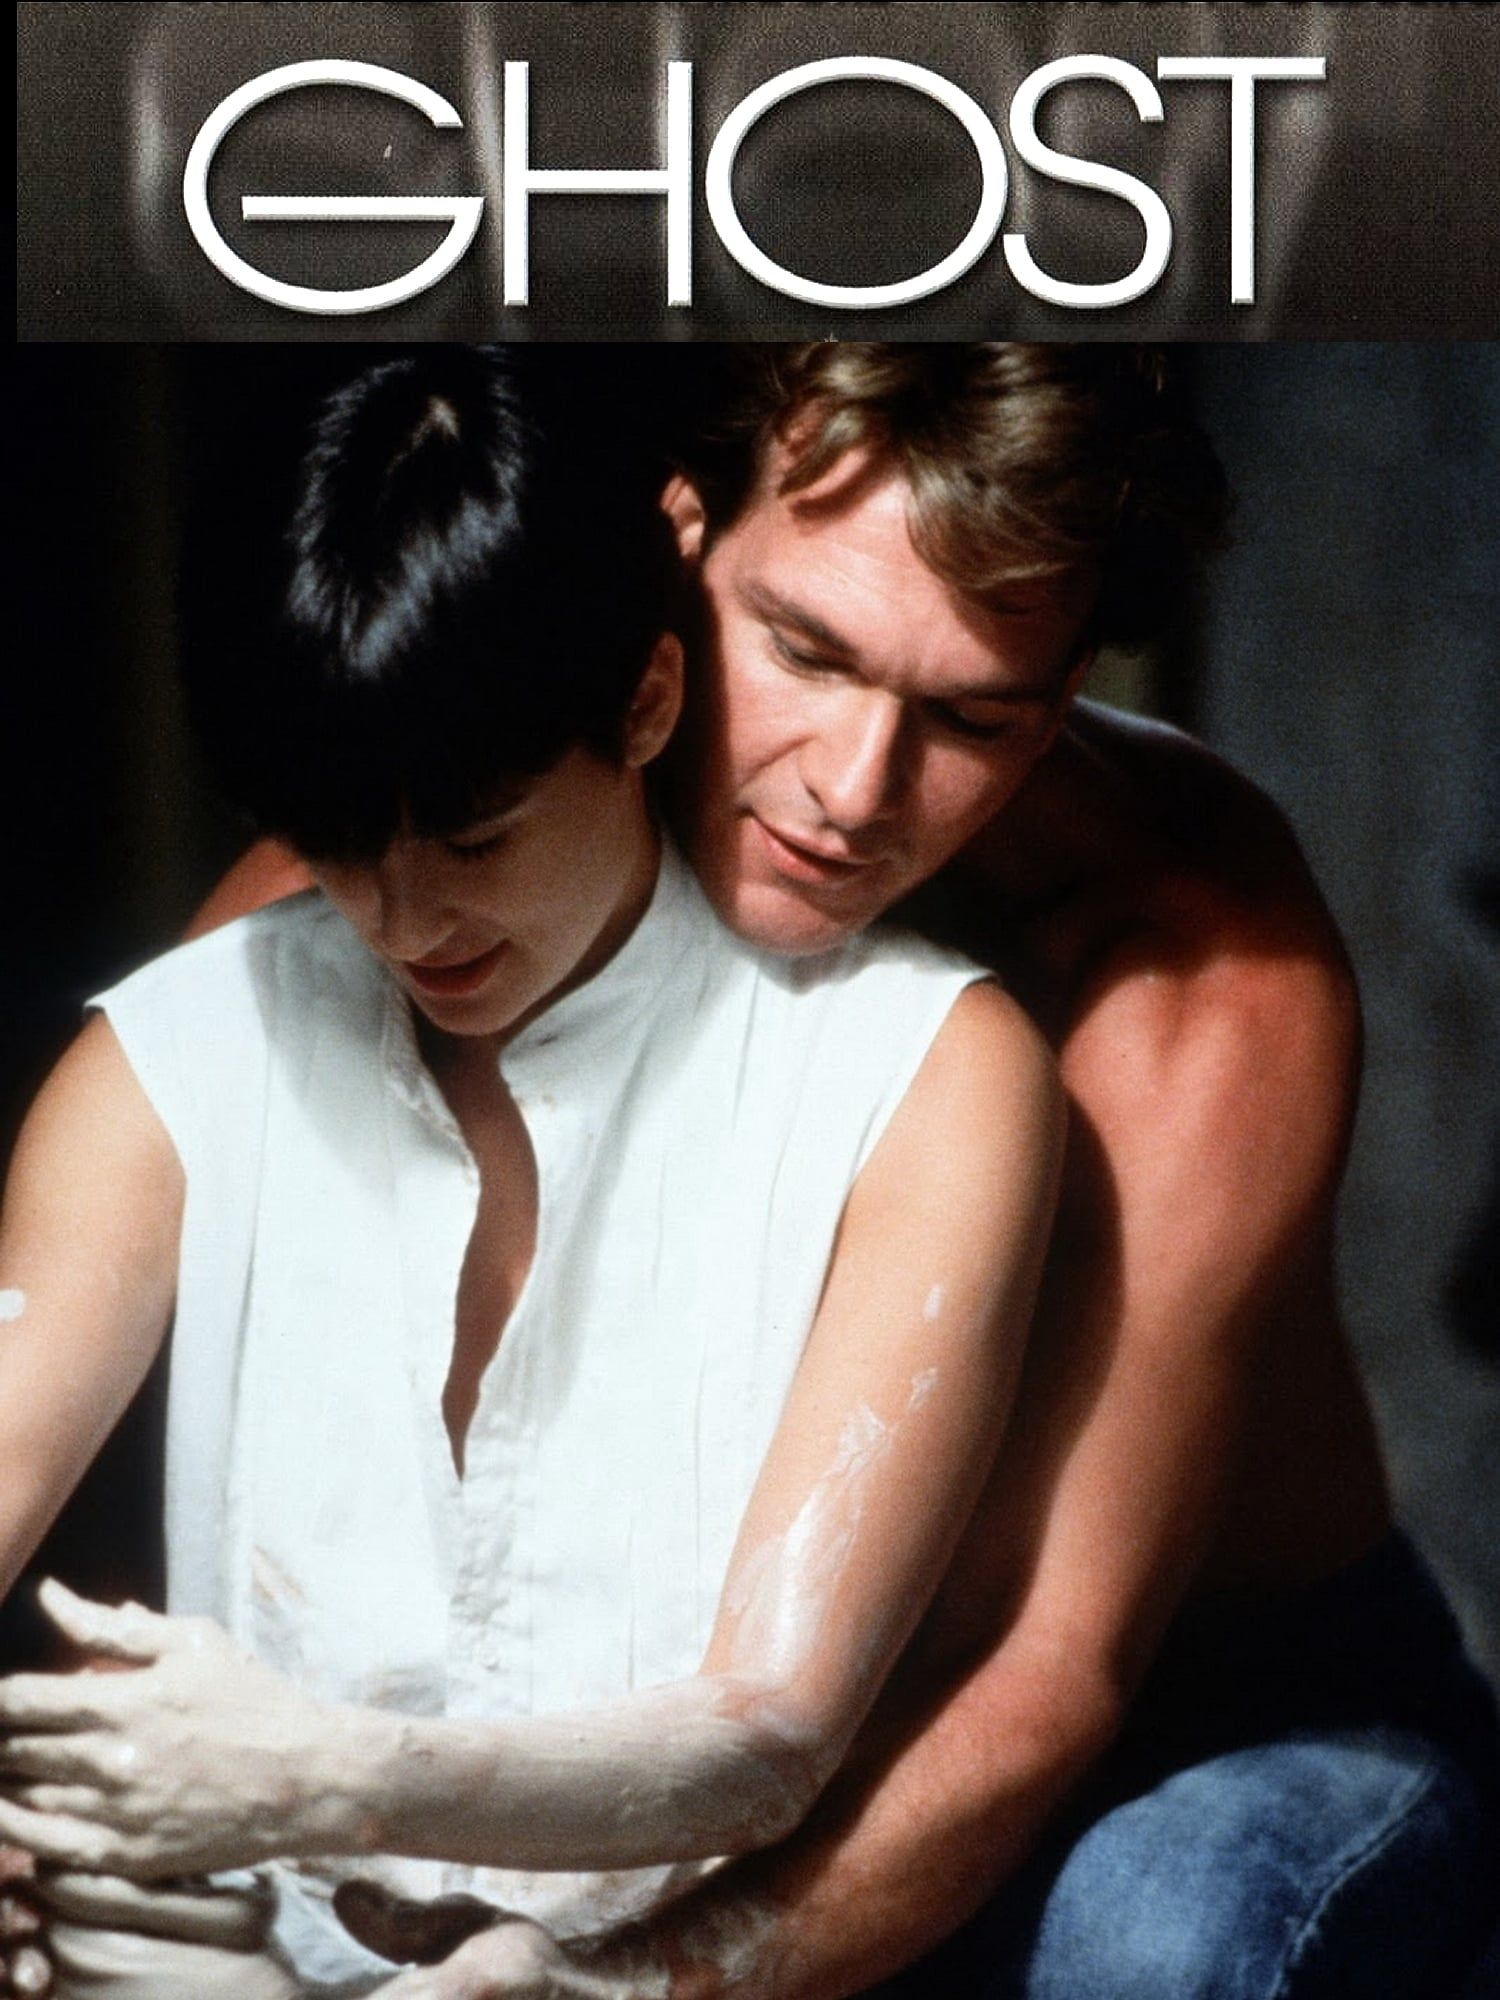 Ghost FULL MOVIE HD1080p Sub English Play For FREE Ghost